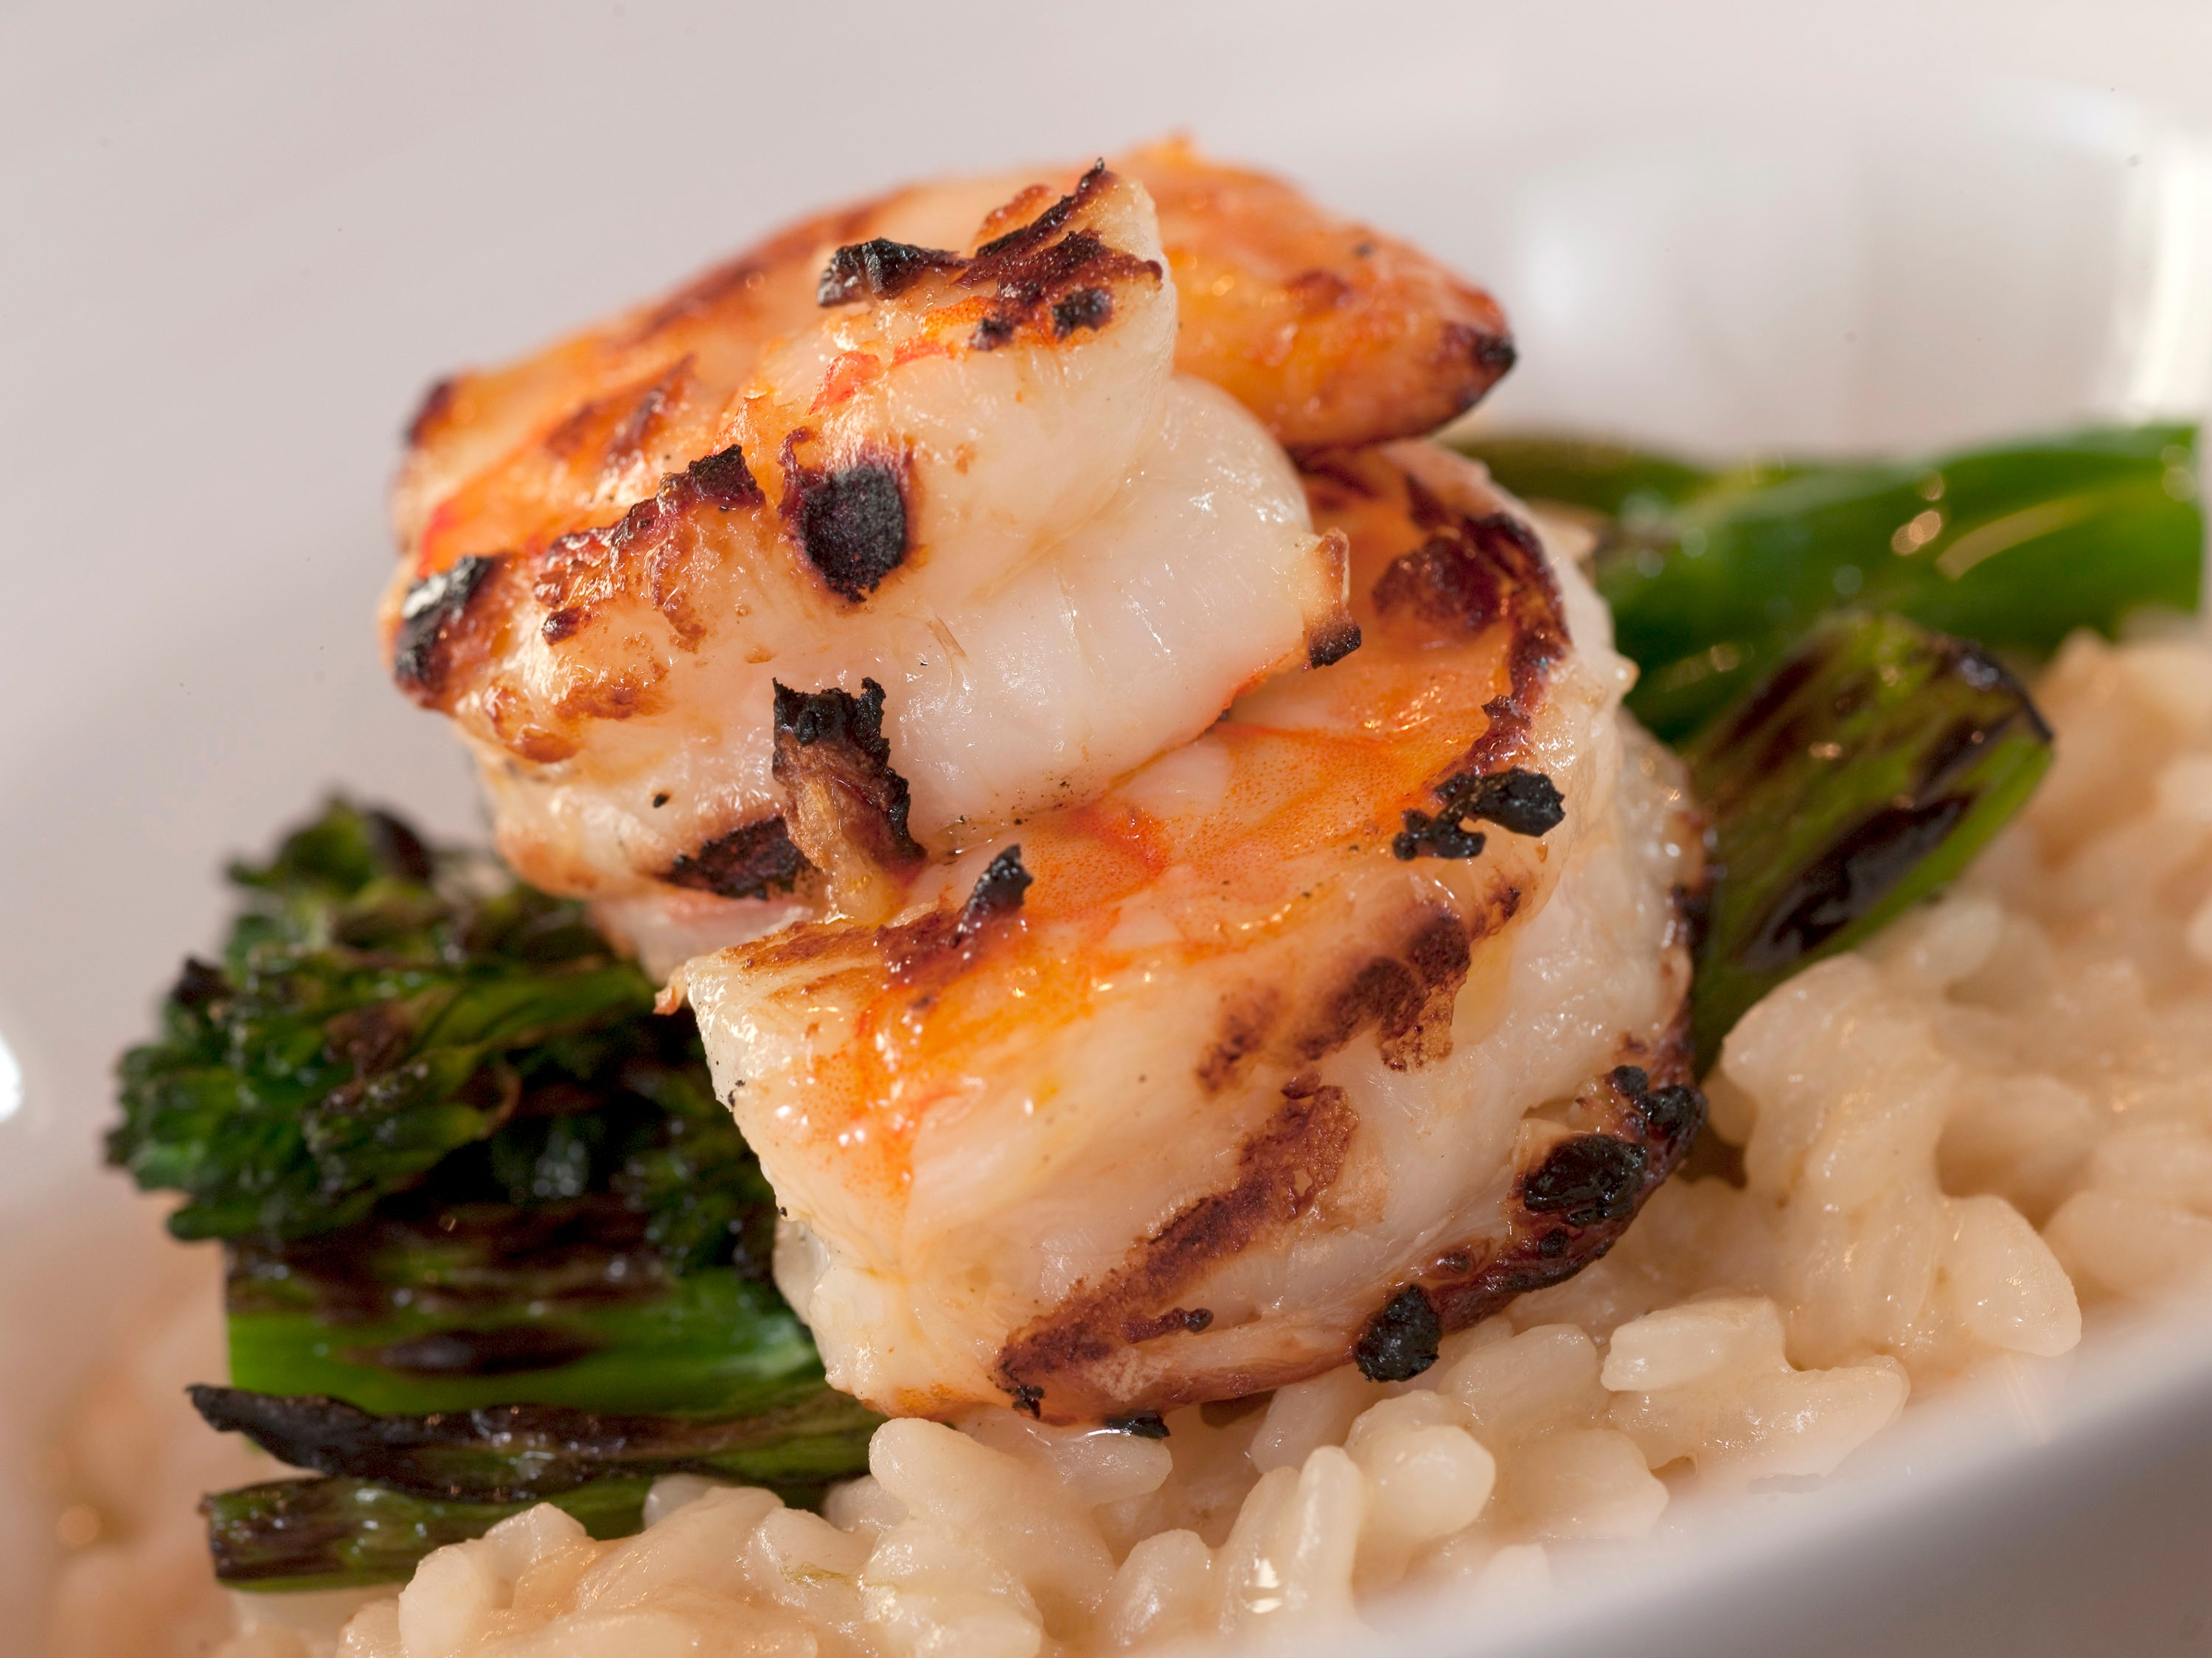 Verace_GrilledShrimpRisottowith Broccolini